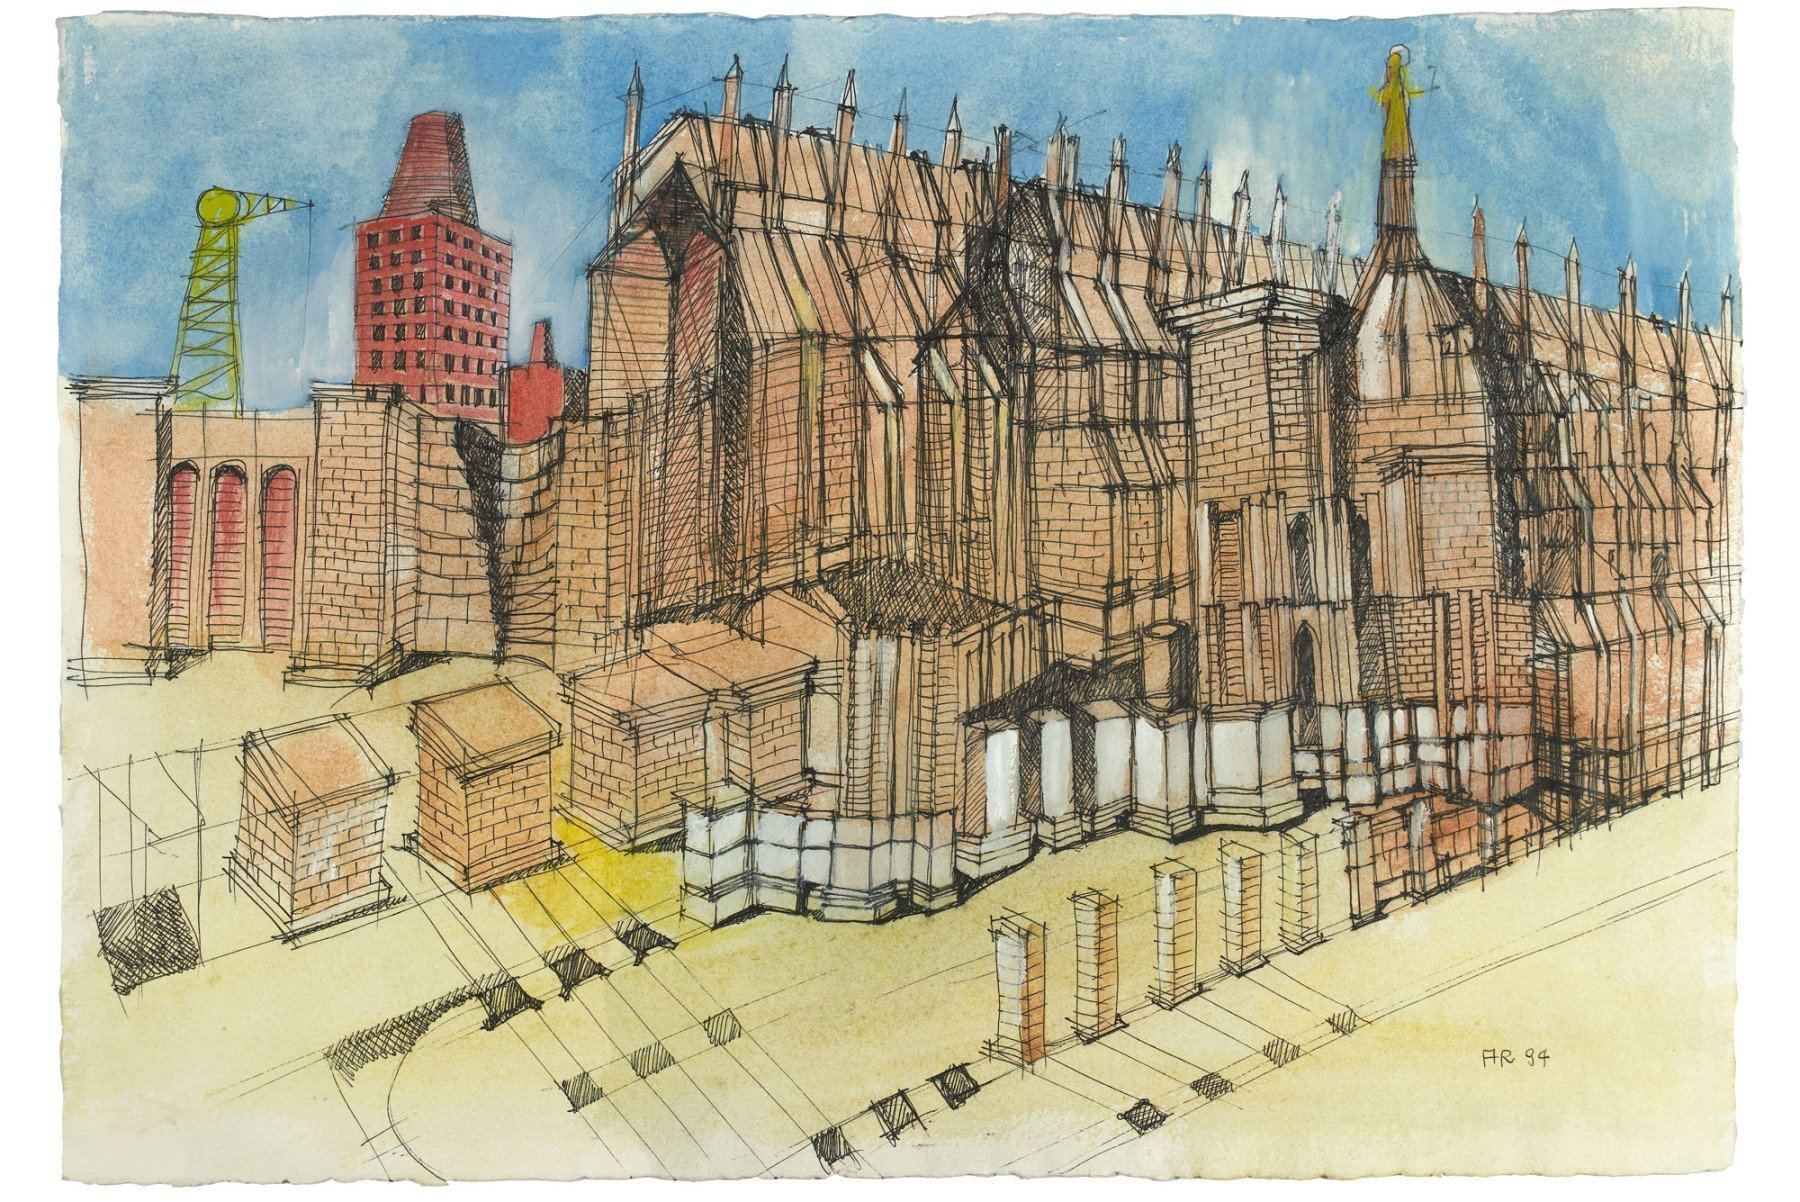 Aldo Rossi Untitled 1994 architectural drawing